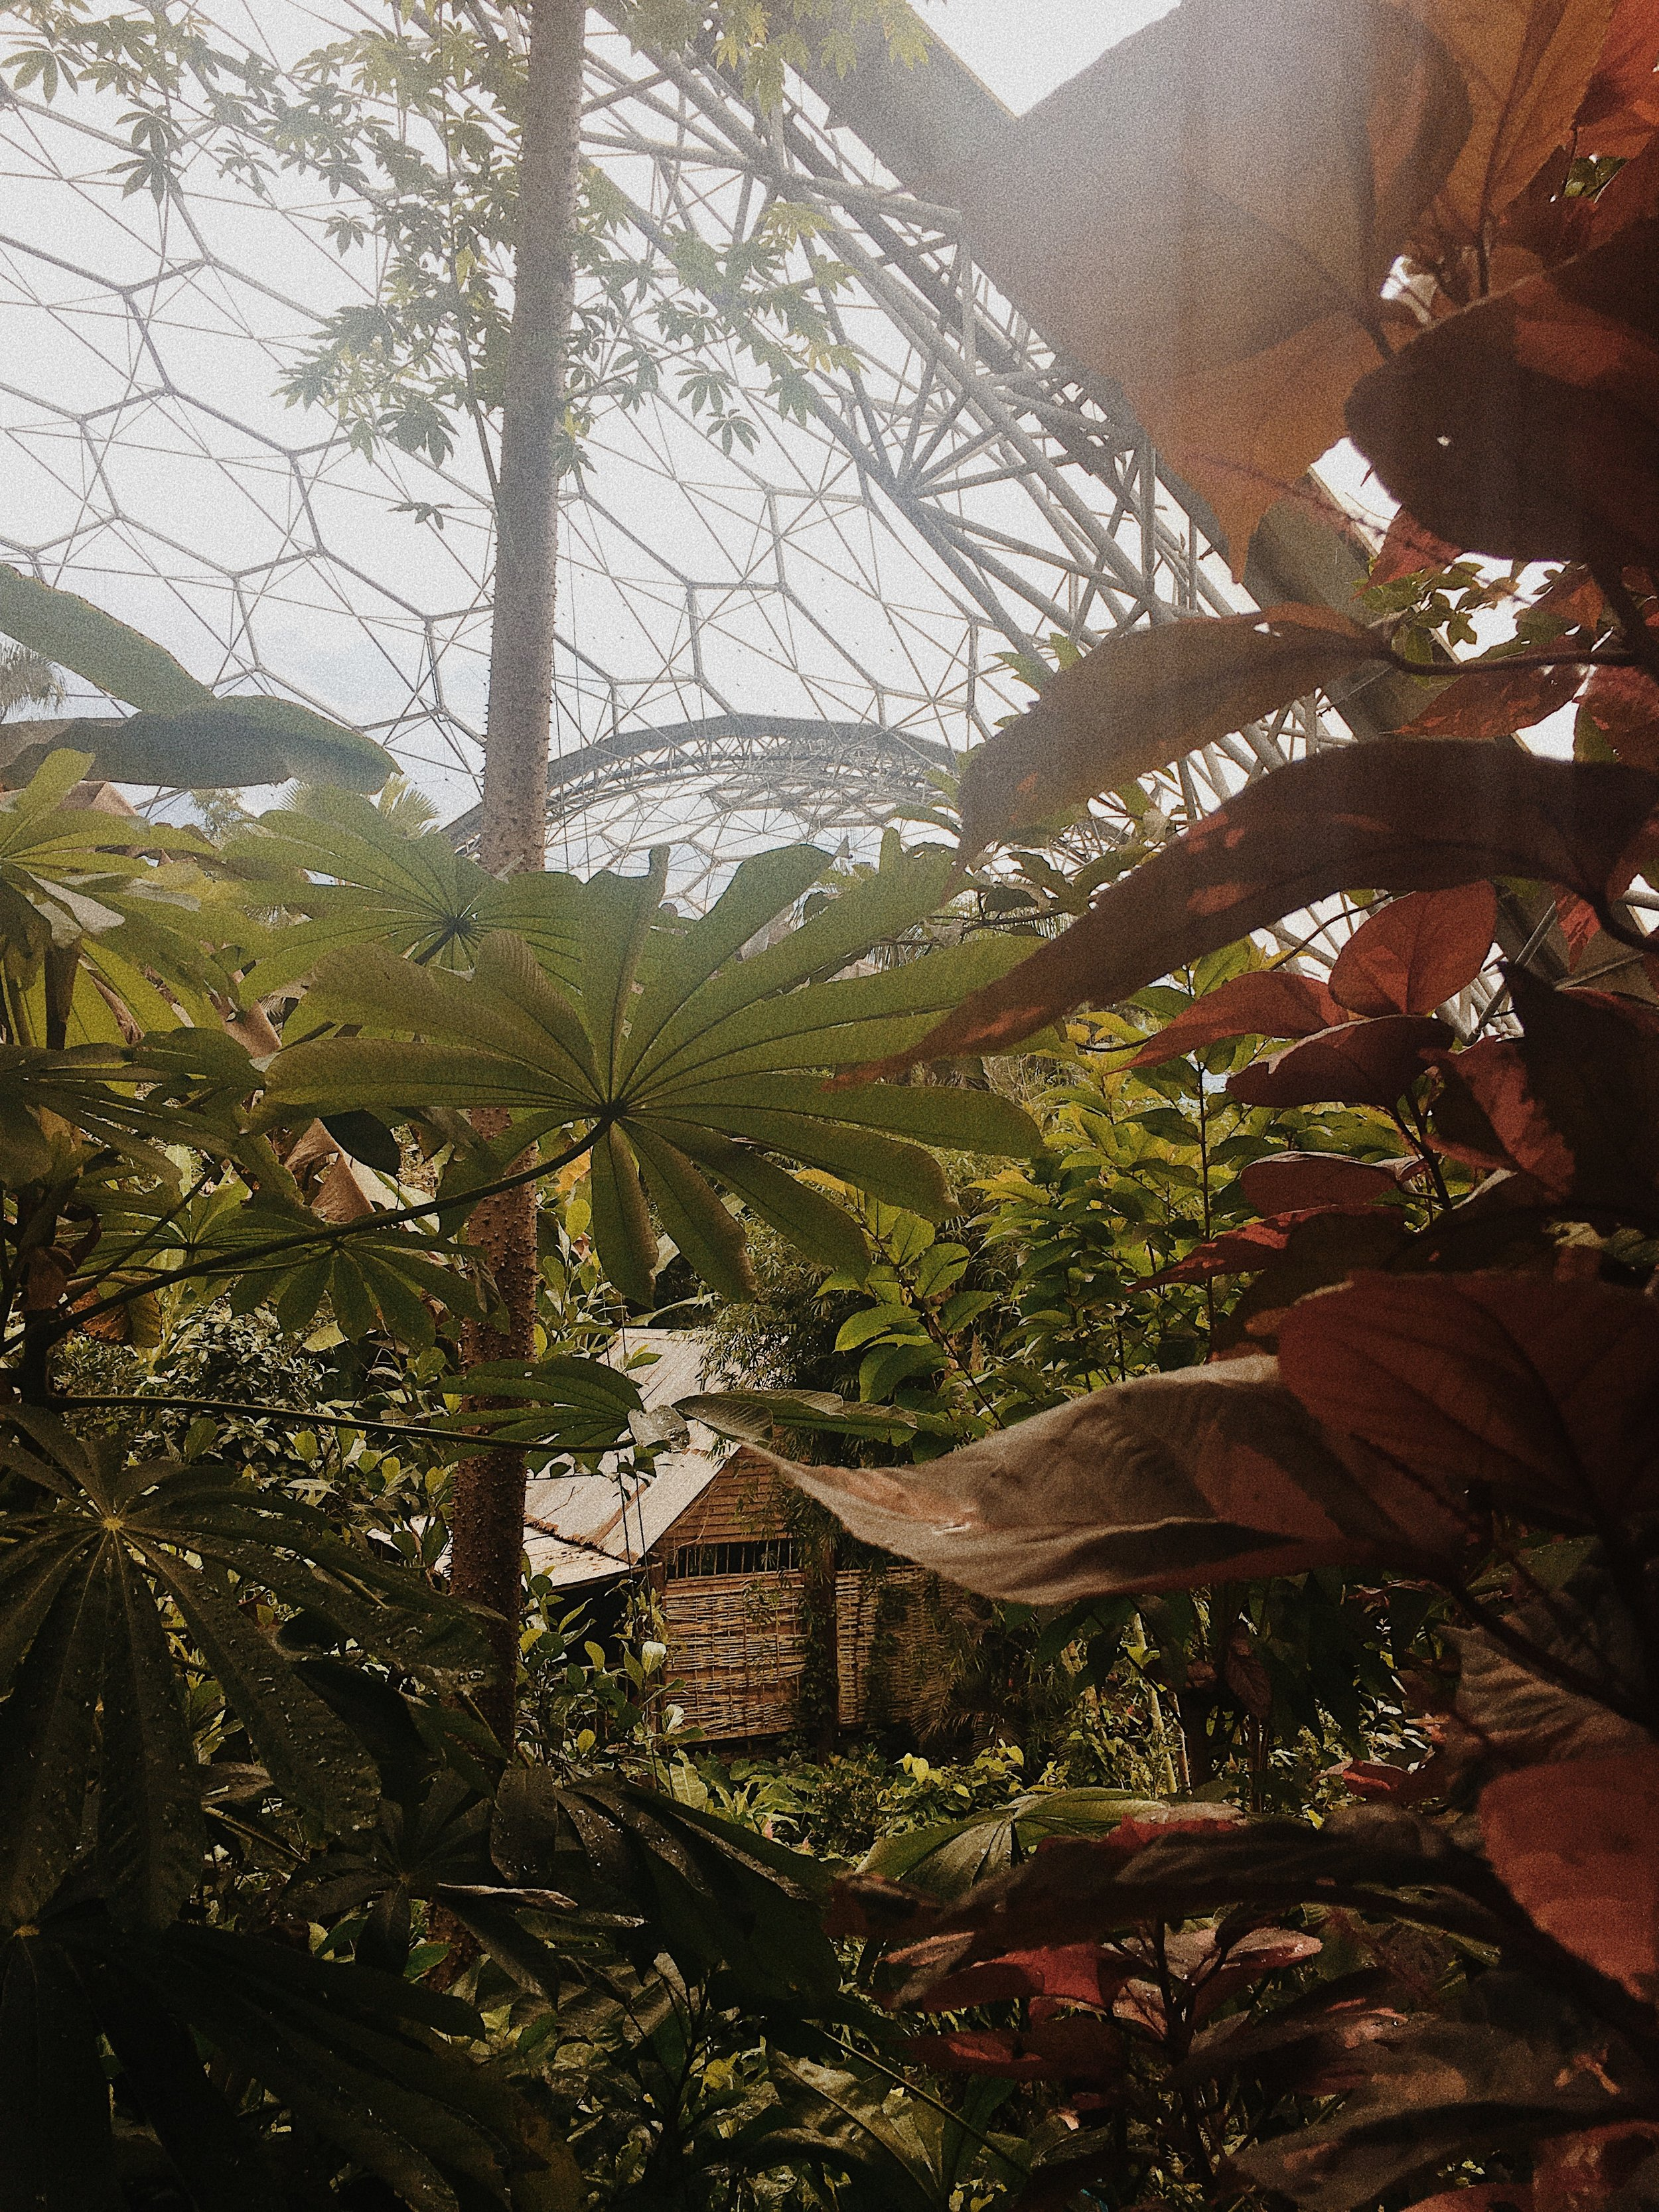 The Rainforest Bio Dome at The Eden Project